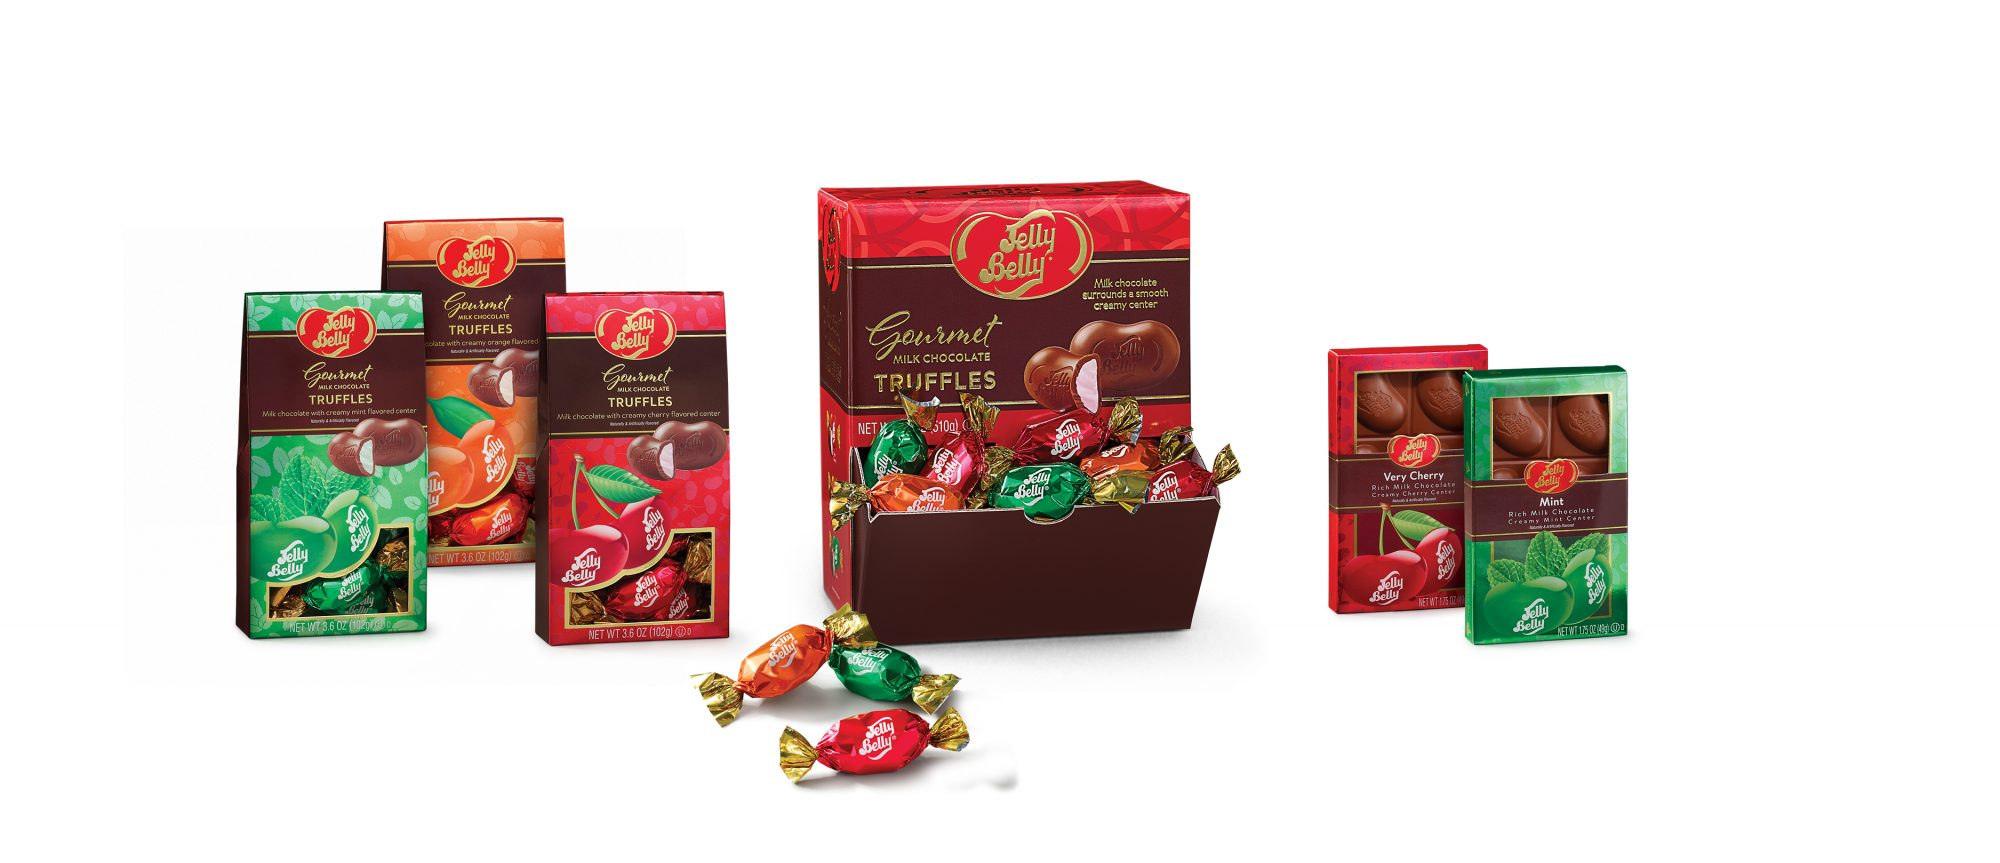 jelly belly chocolate bars and truffles